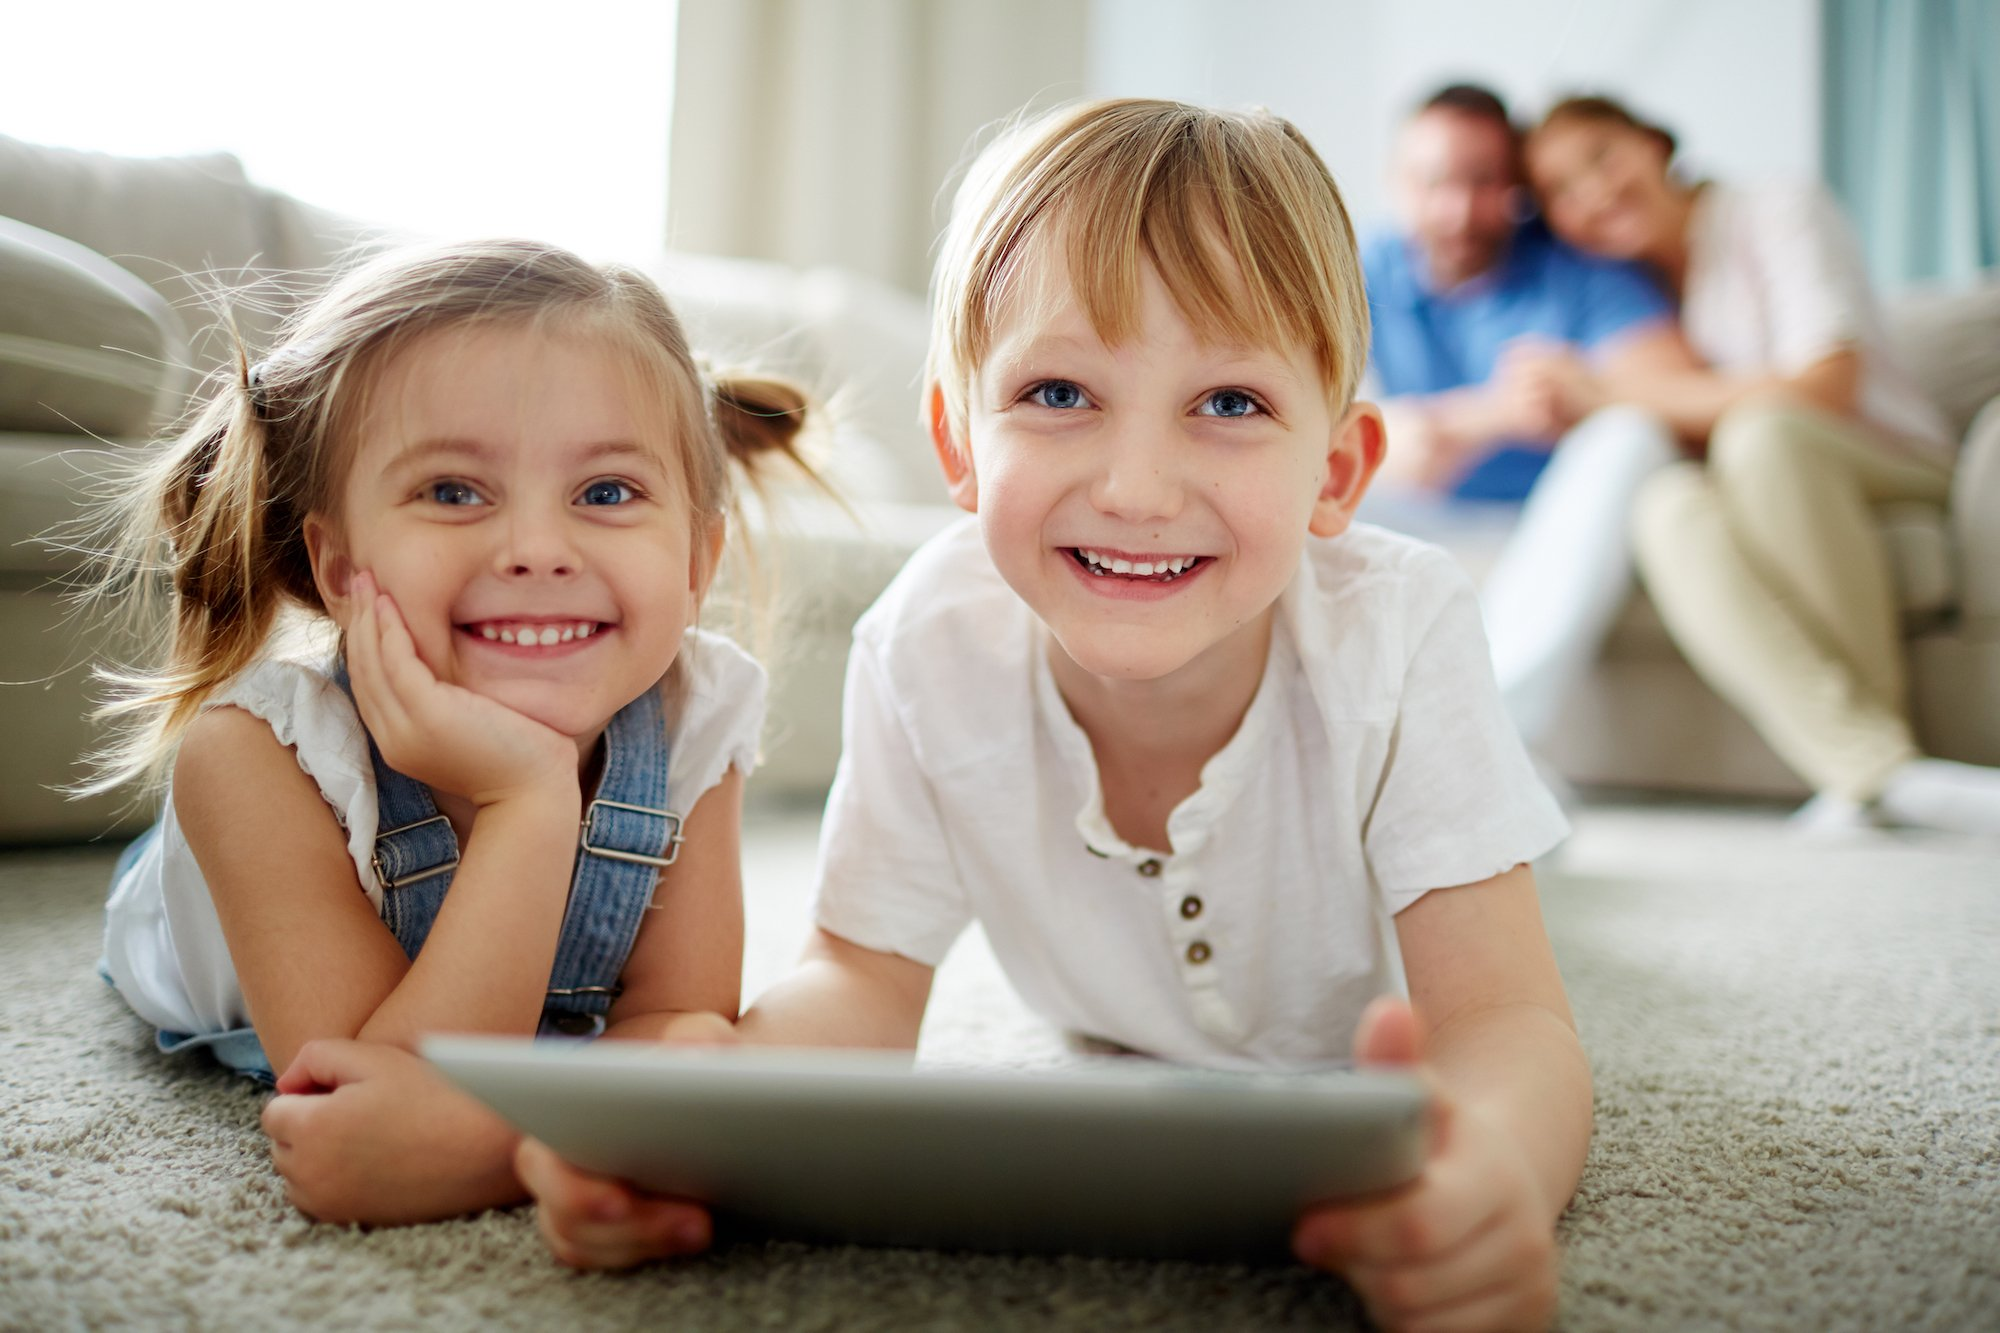 Is Your In-Network Provider Not Getting the Results Your Child Needs?